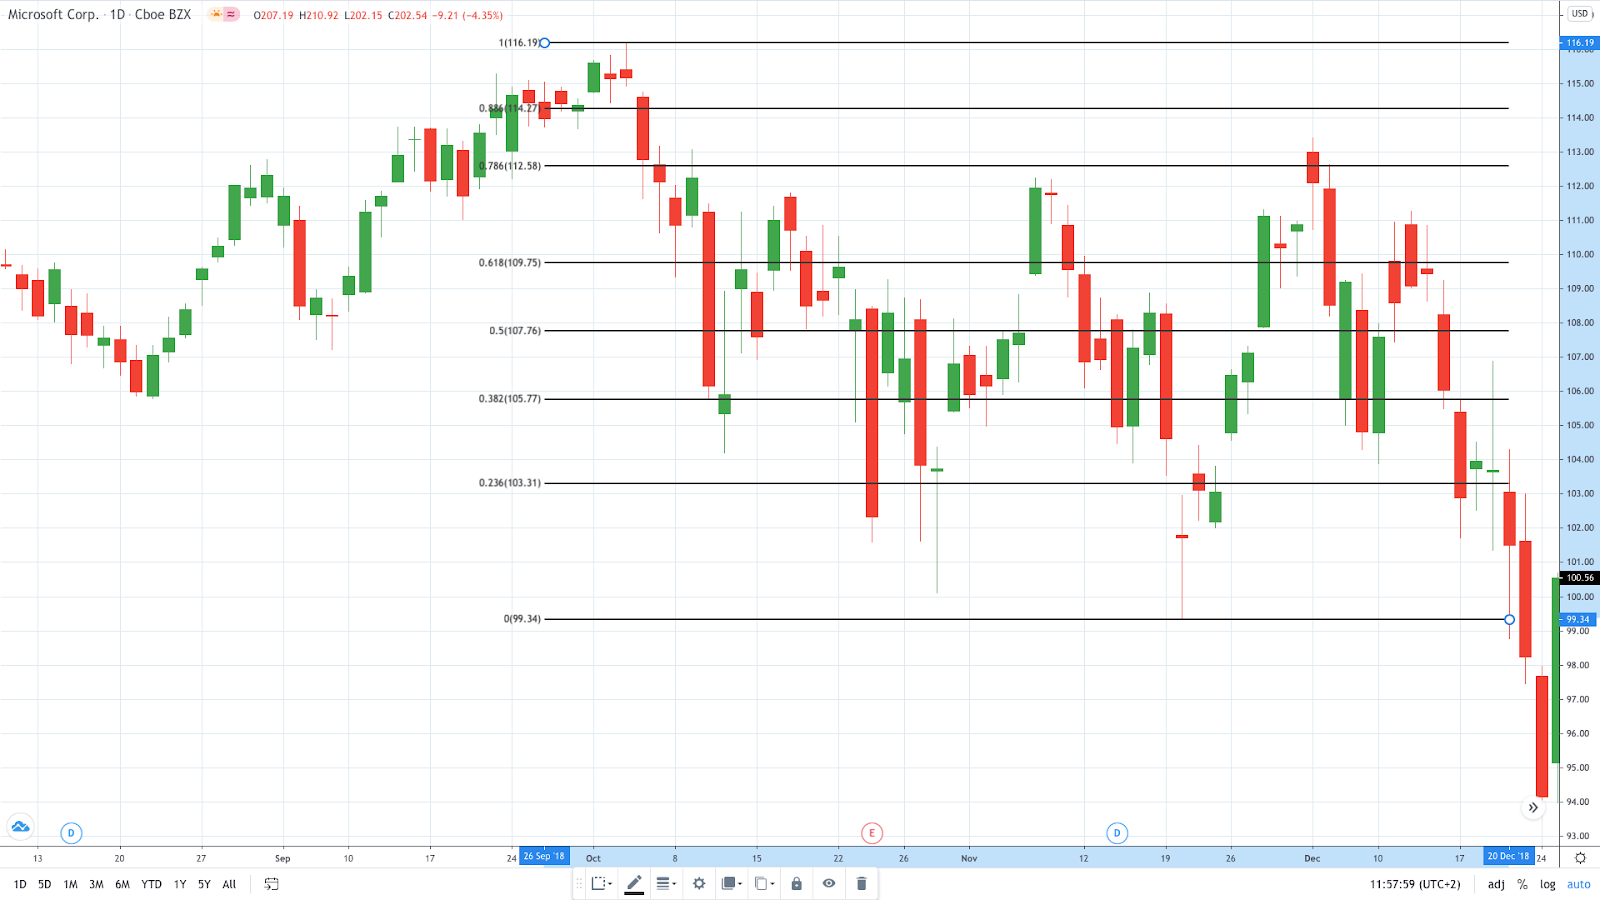 Fibonacci retracement and extension lines - Microsoft daily chart (Source: TradingView)